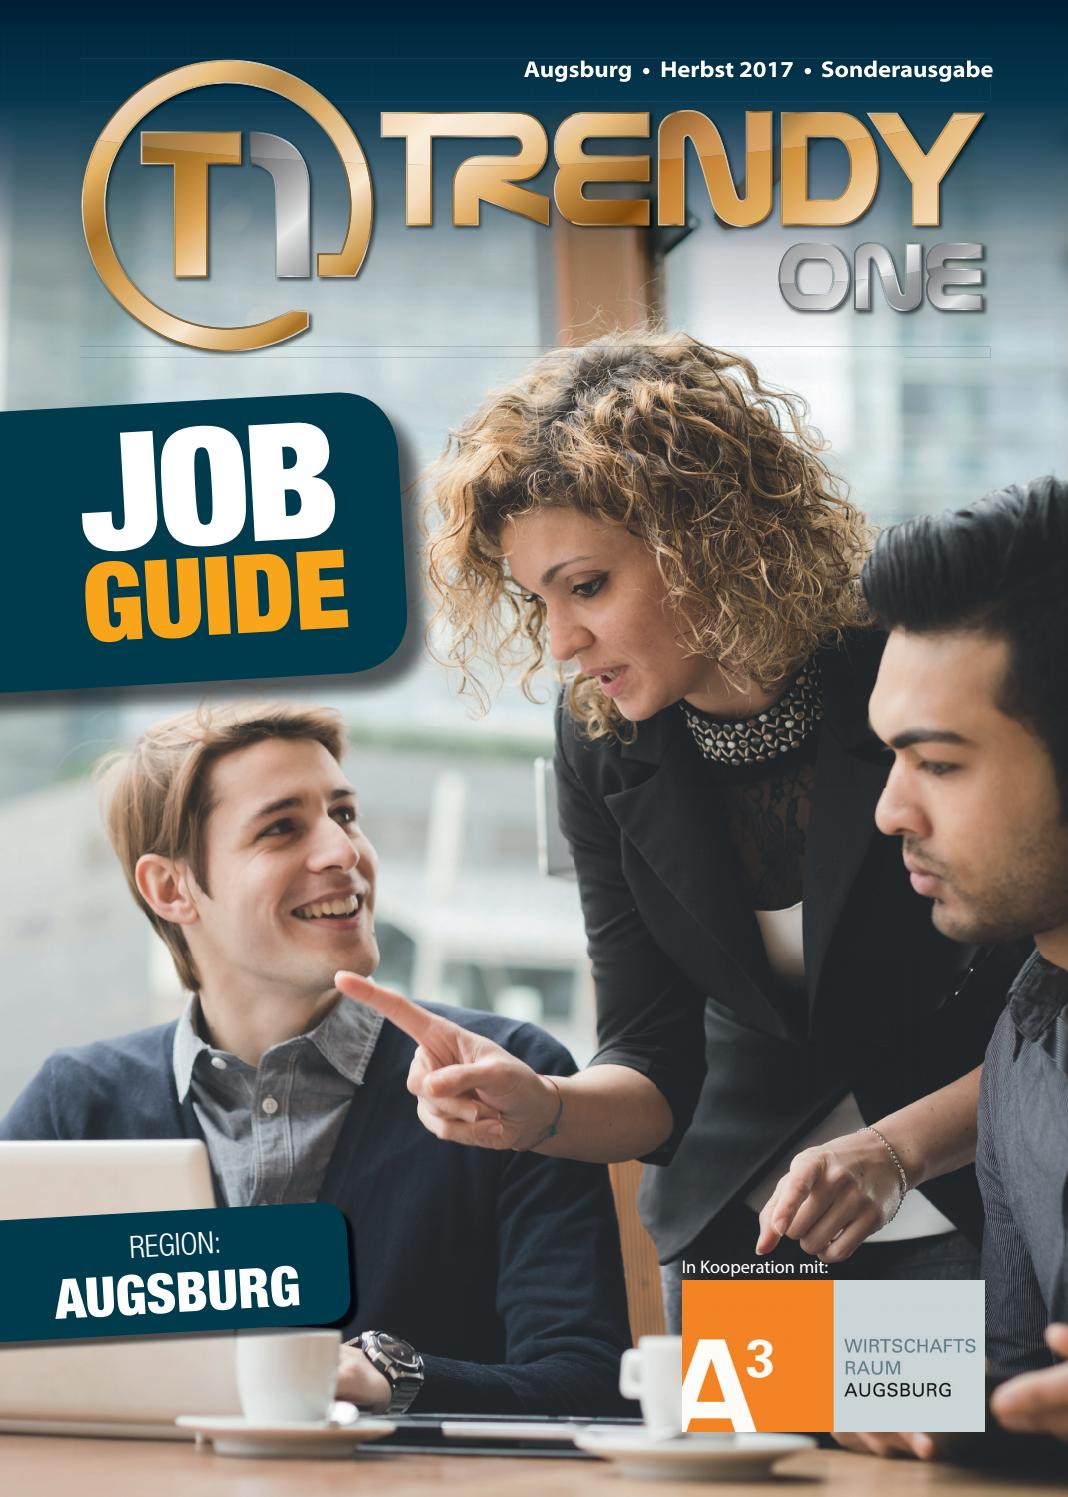 TRENDYone | Job Guide Herbst 2017 | Region Augsburg by ad can do GmbH & Co.  KG - issuu